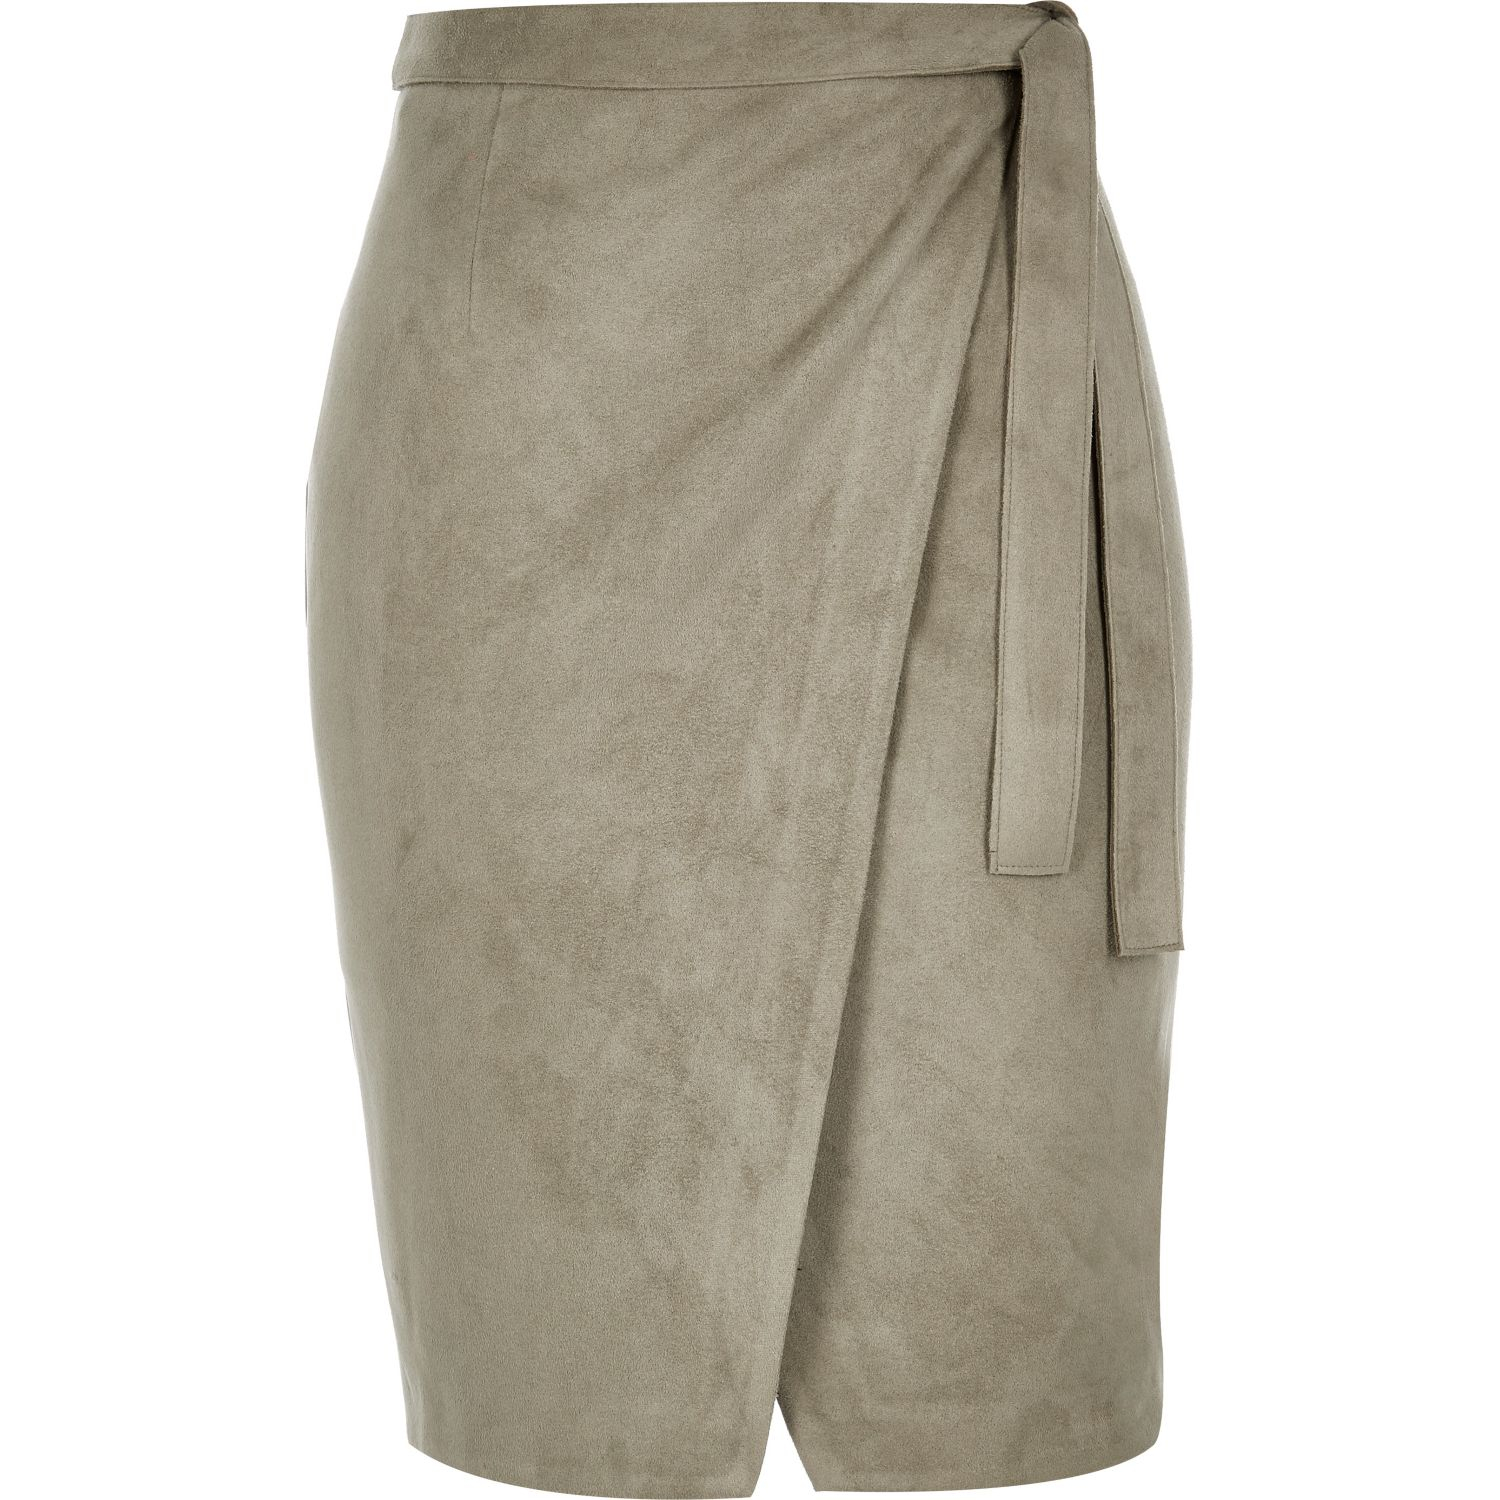 River island Khaki Green Faux Suede Wrap Skirt in Natural | Lyst